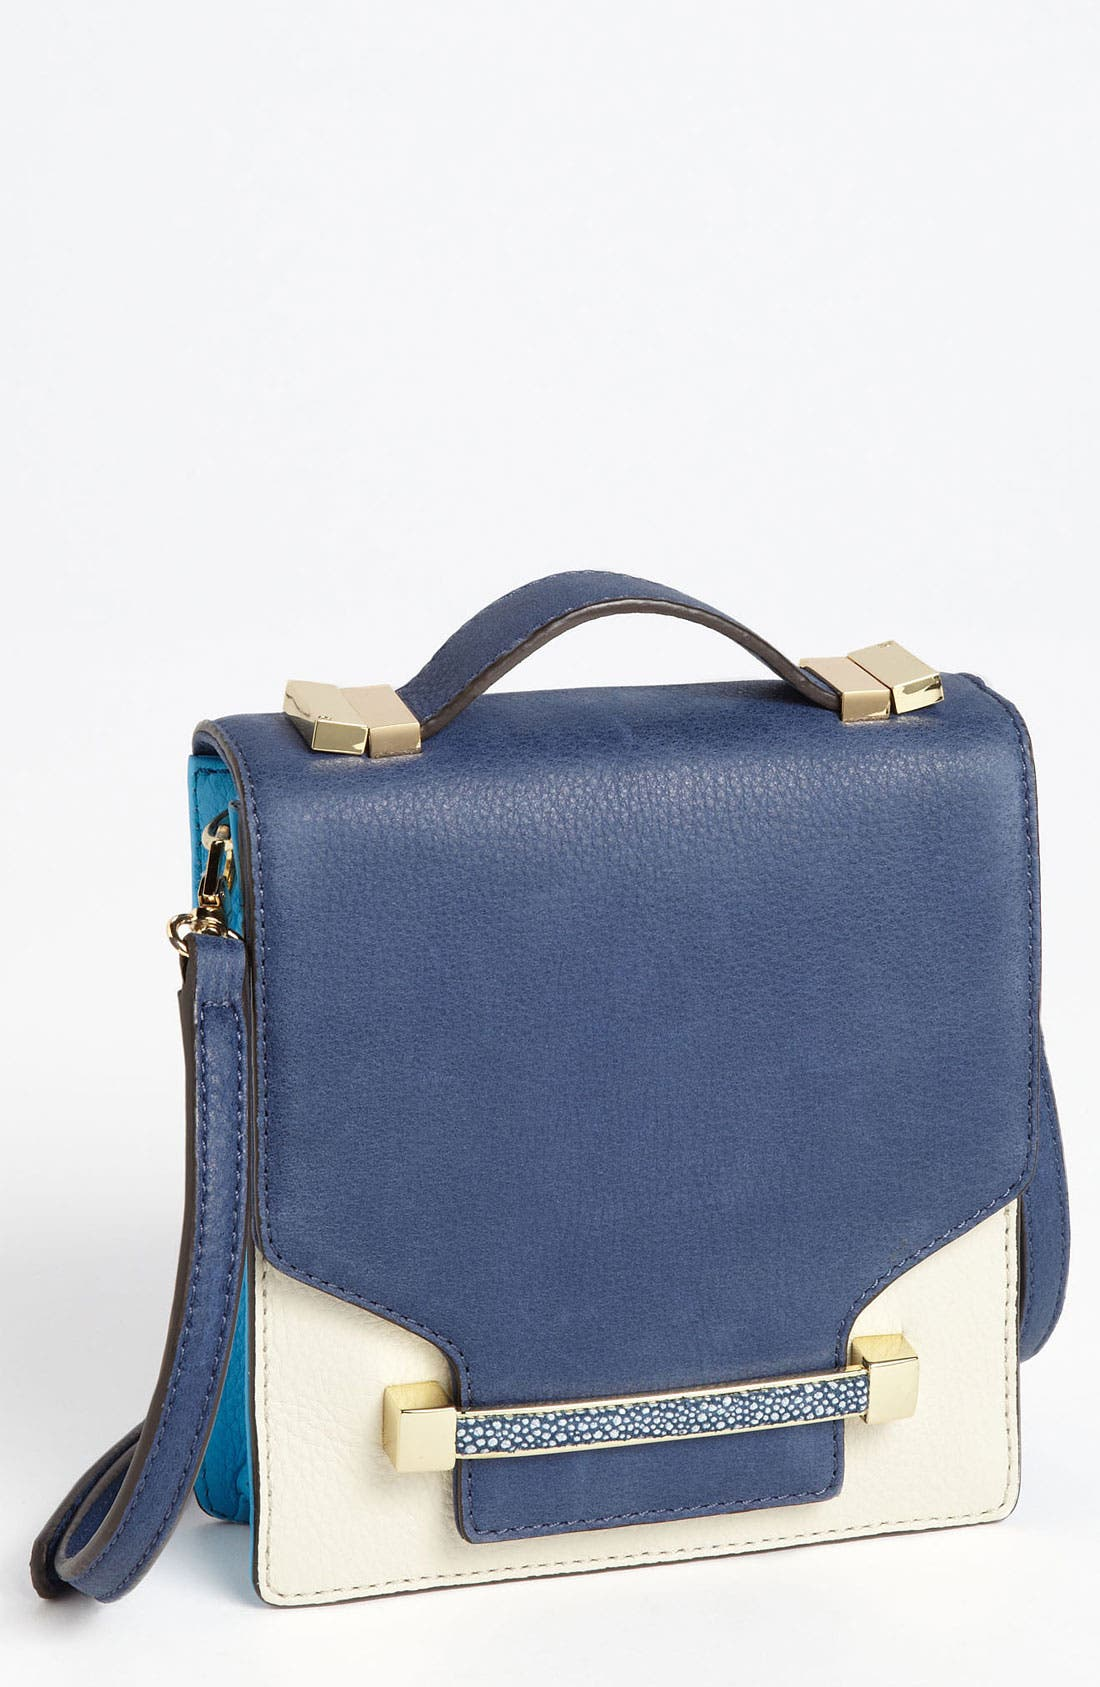 Main Image - Vince Camuto 'Julia' Crossbody Bag